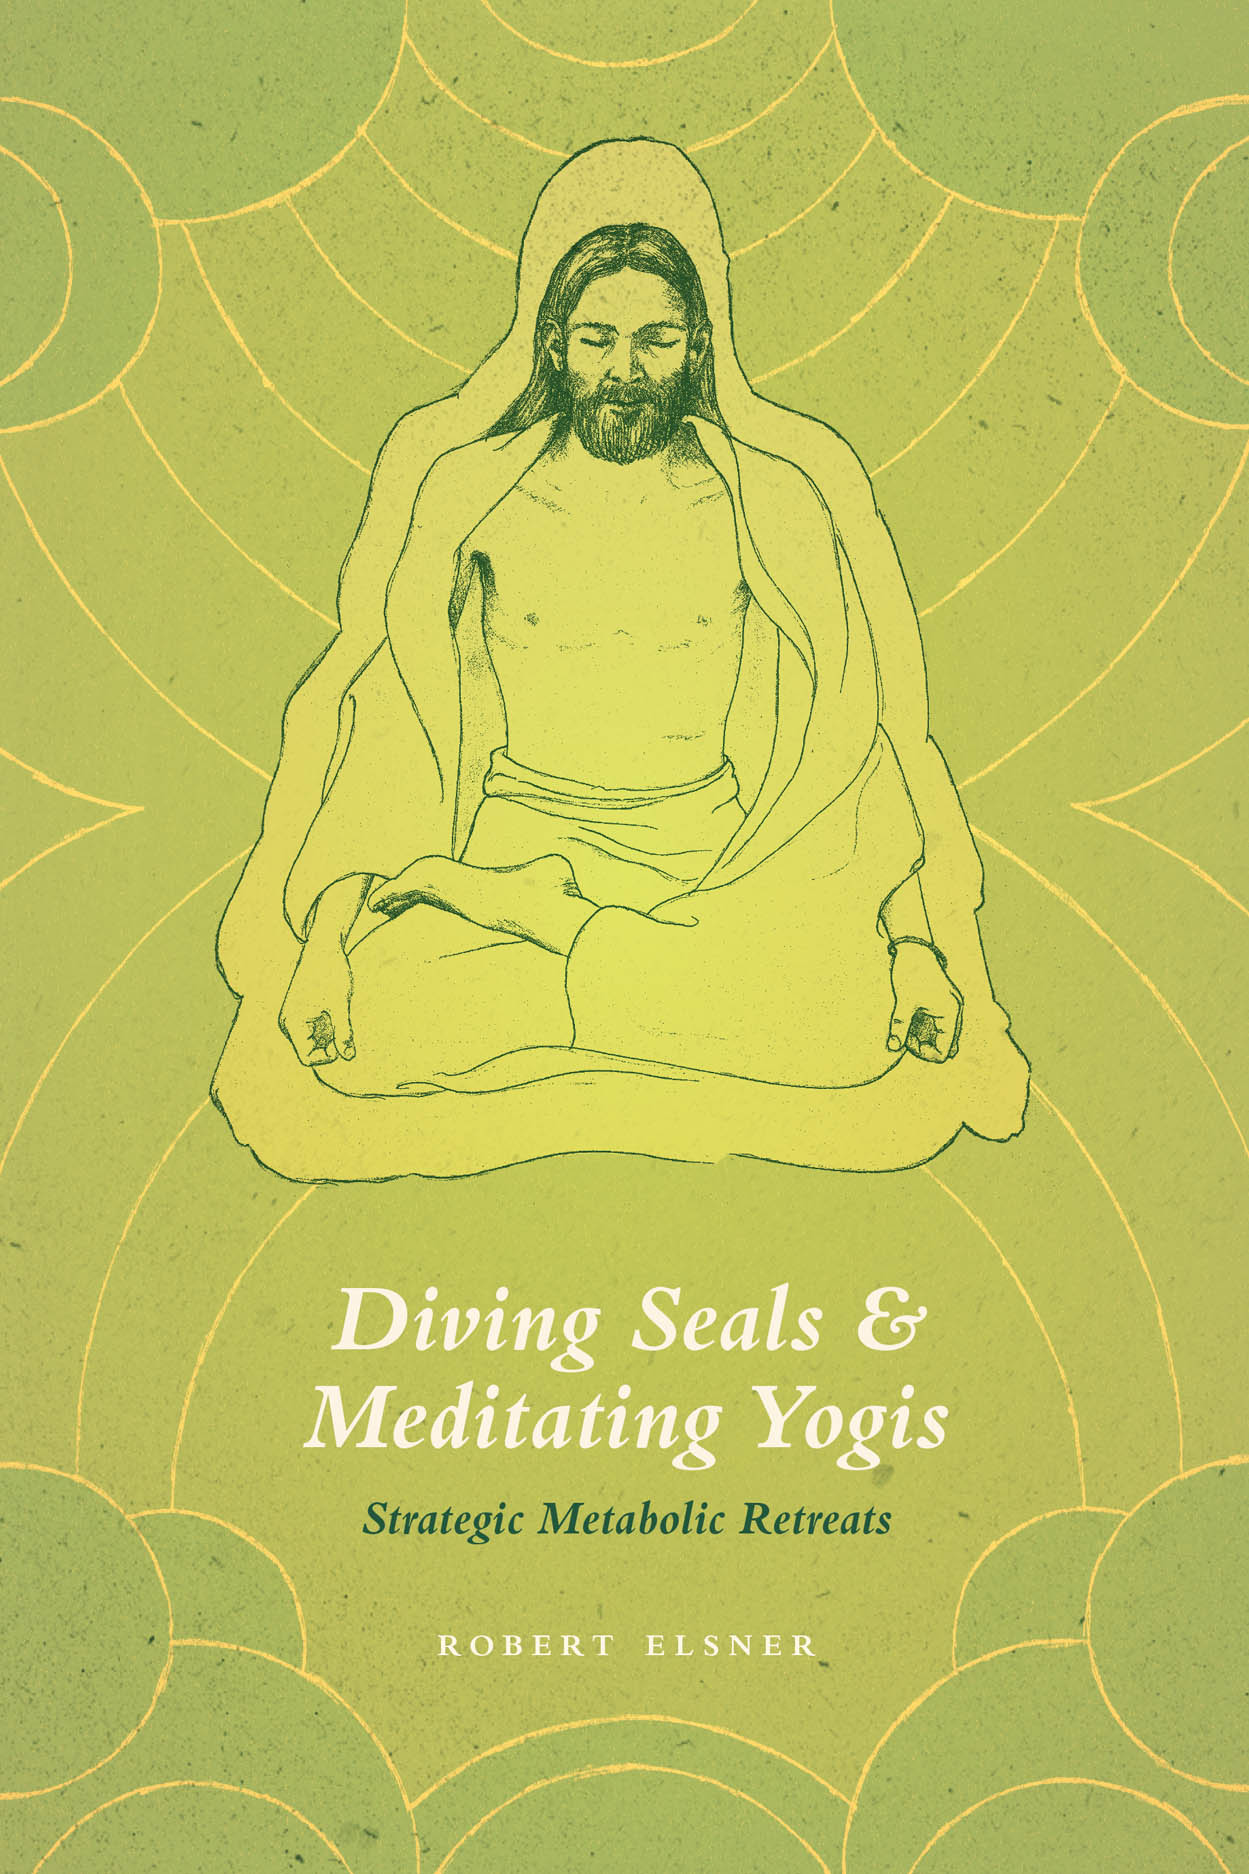 Diving Seals and Meditating Yogis